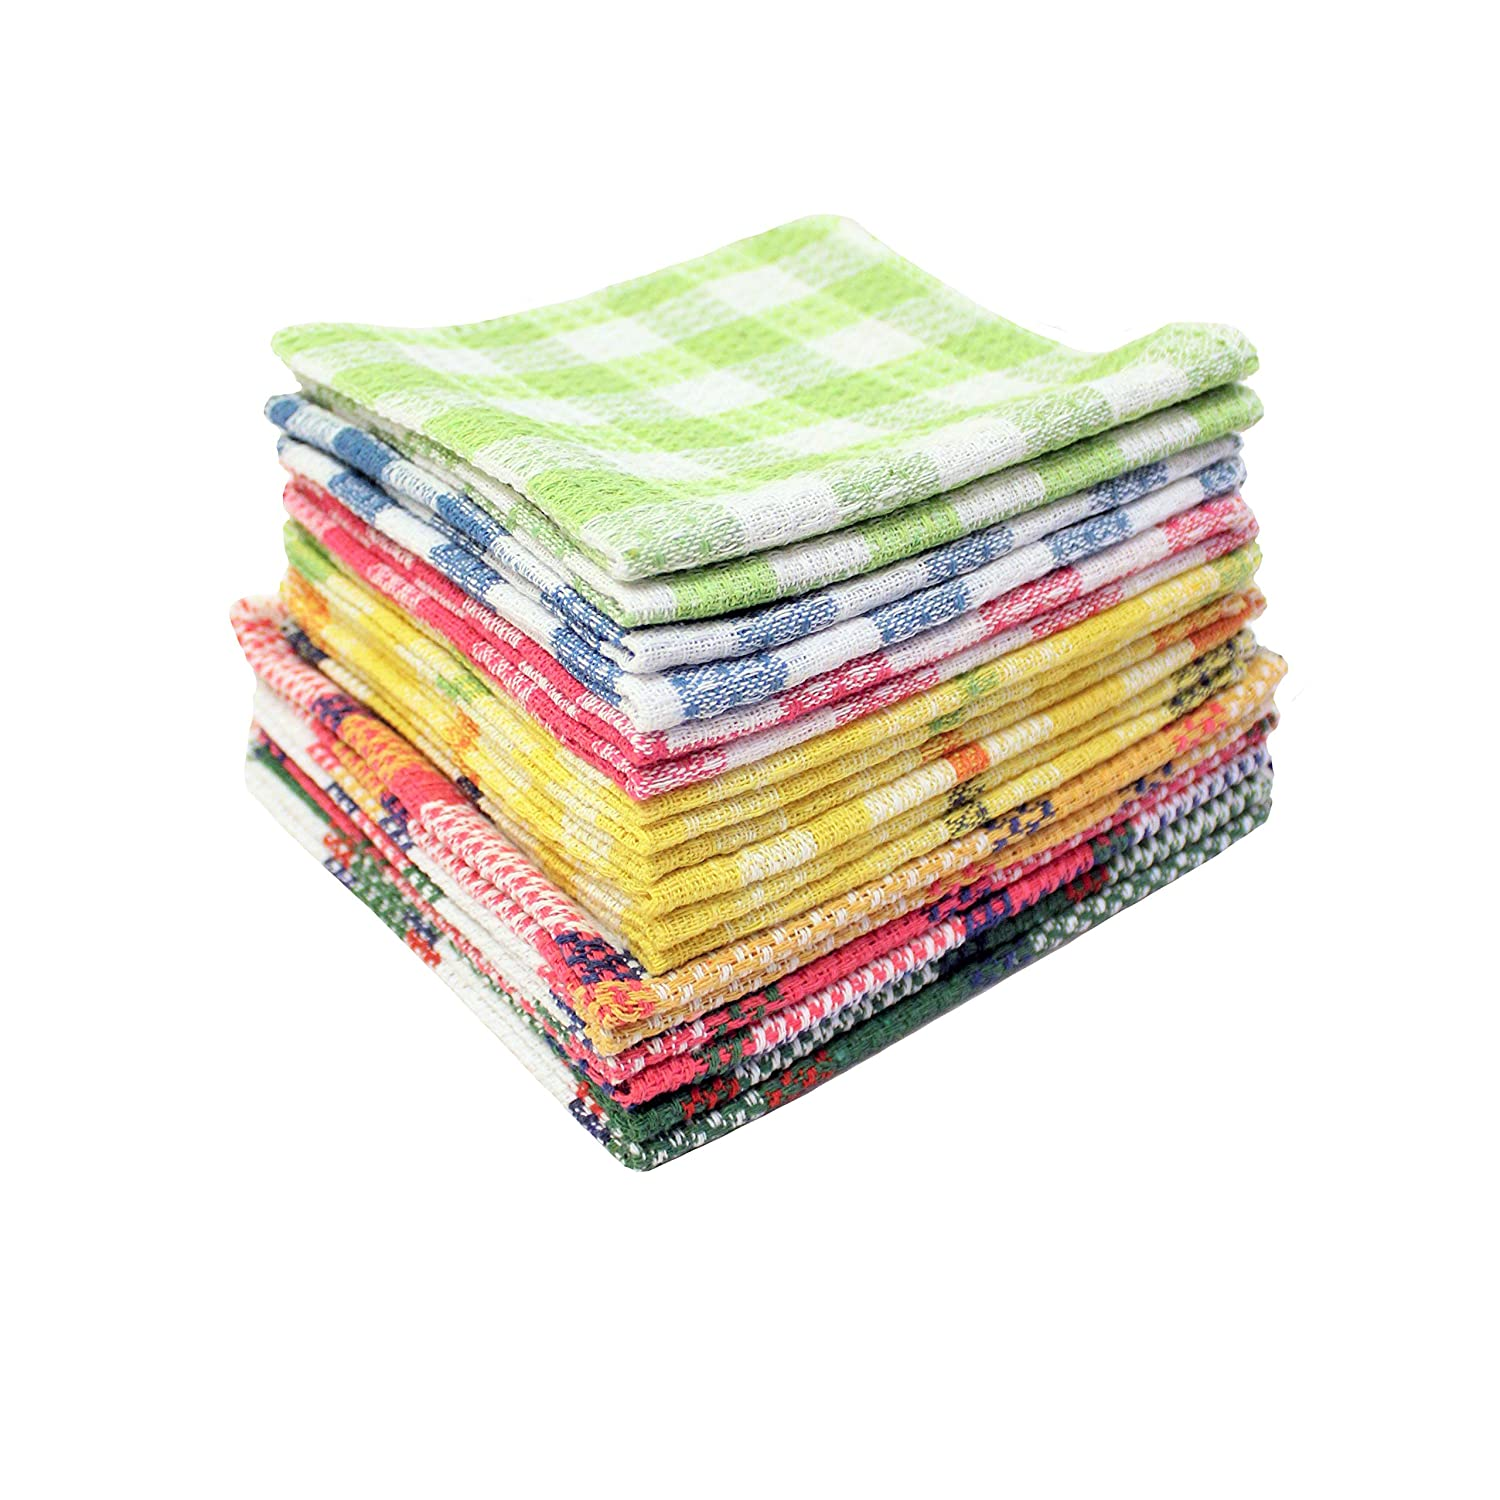 "AHOLTA DESIGN Dish Towels Poly-Cotton Tea Hand Towels - Multi-Purpose Set of 18 Kitchen Cloths Absorbent - Great for Kitchen Cooking and Household Cleaning(Multi, Dish Towels 12""x12"" (18 PCs))"